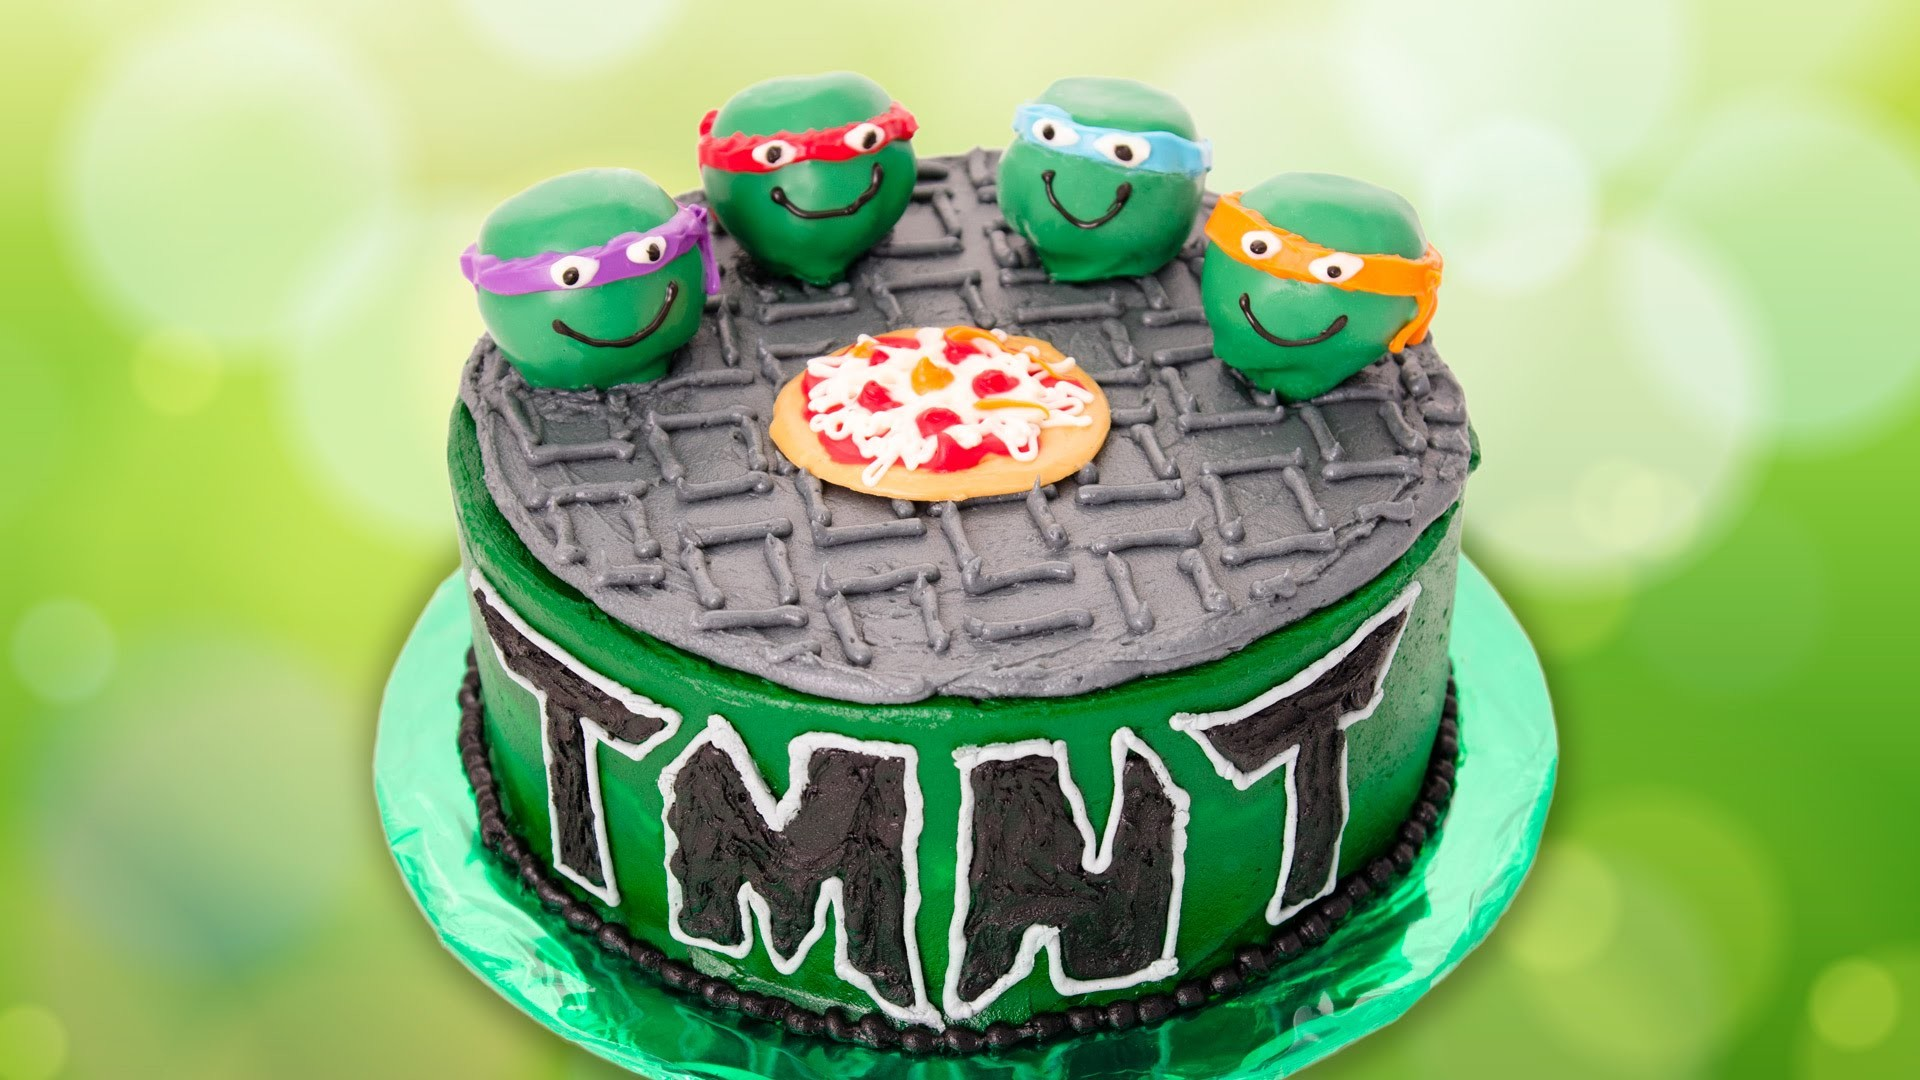 Teenage Mutant Ninja Turtles Cake from Cookies Cupcakes and Cardio